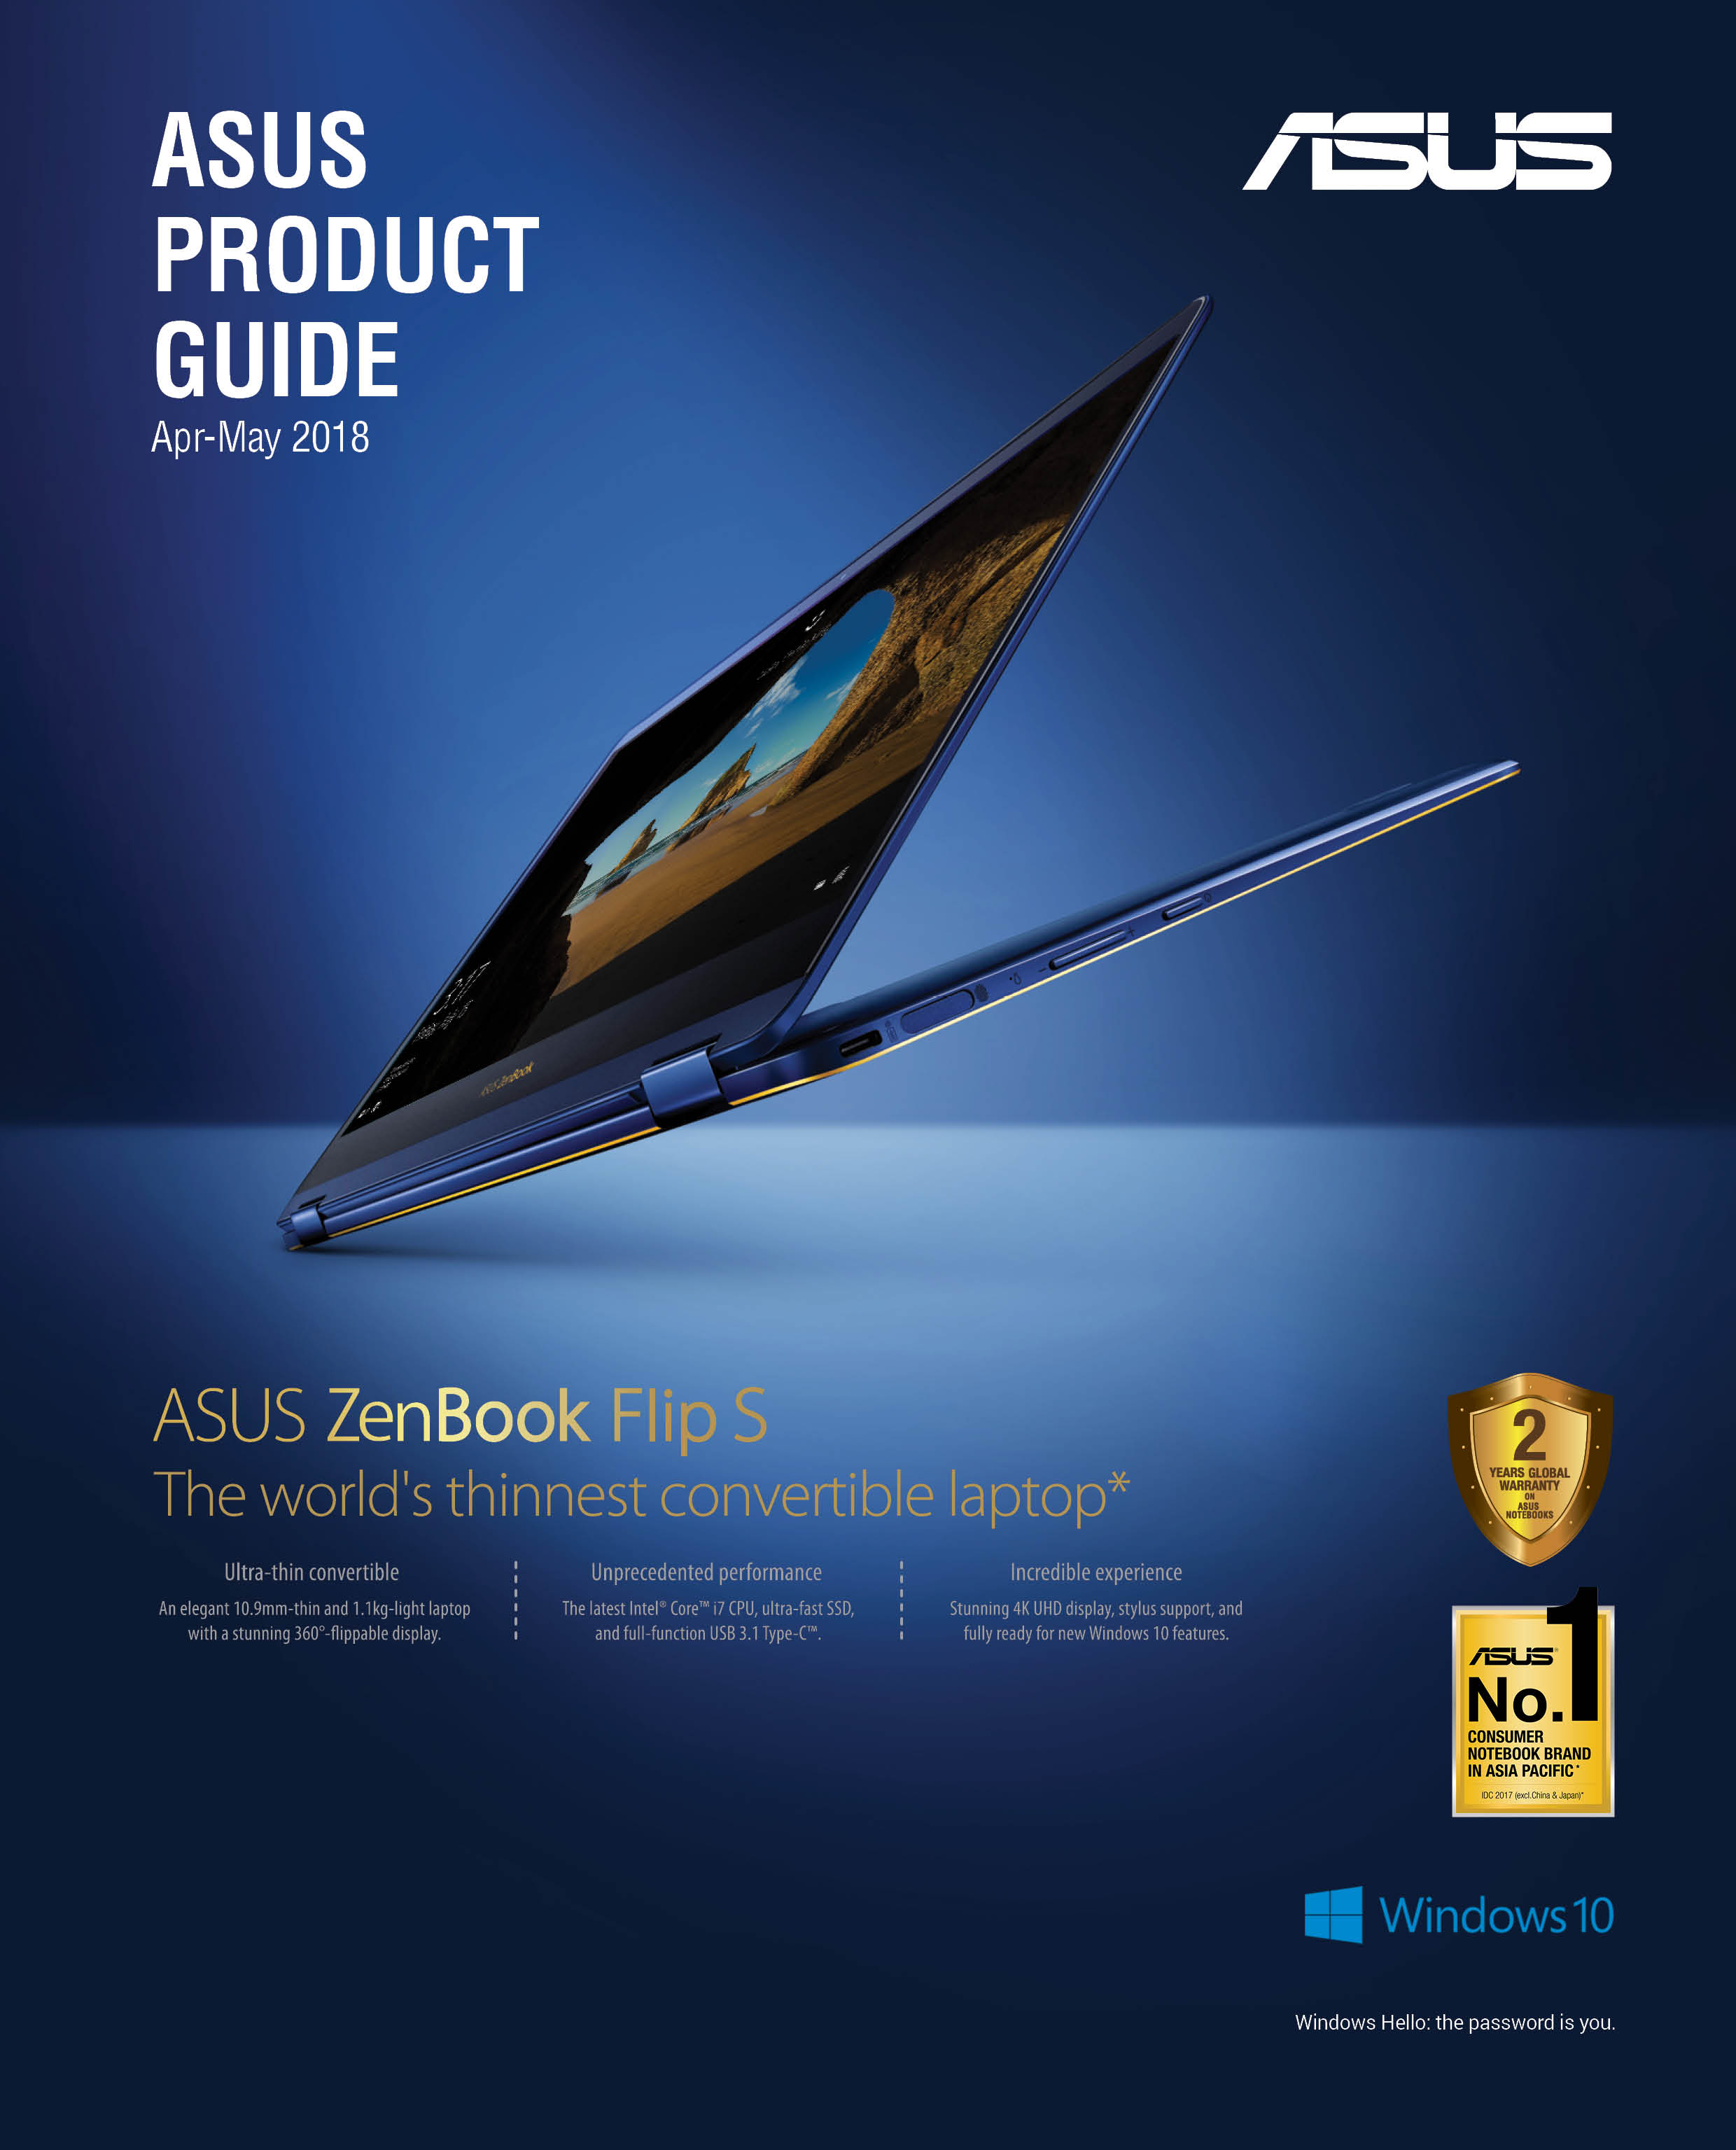 static webpage asus product guide harga hape 2018 rh hargahape website asus product guide july 2018 asus product guide malaysia